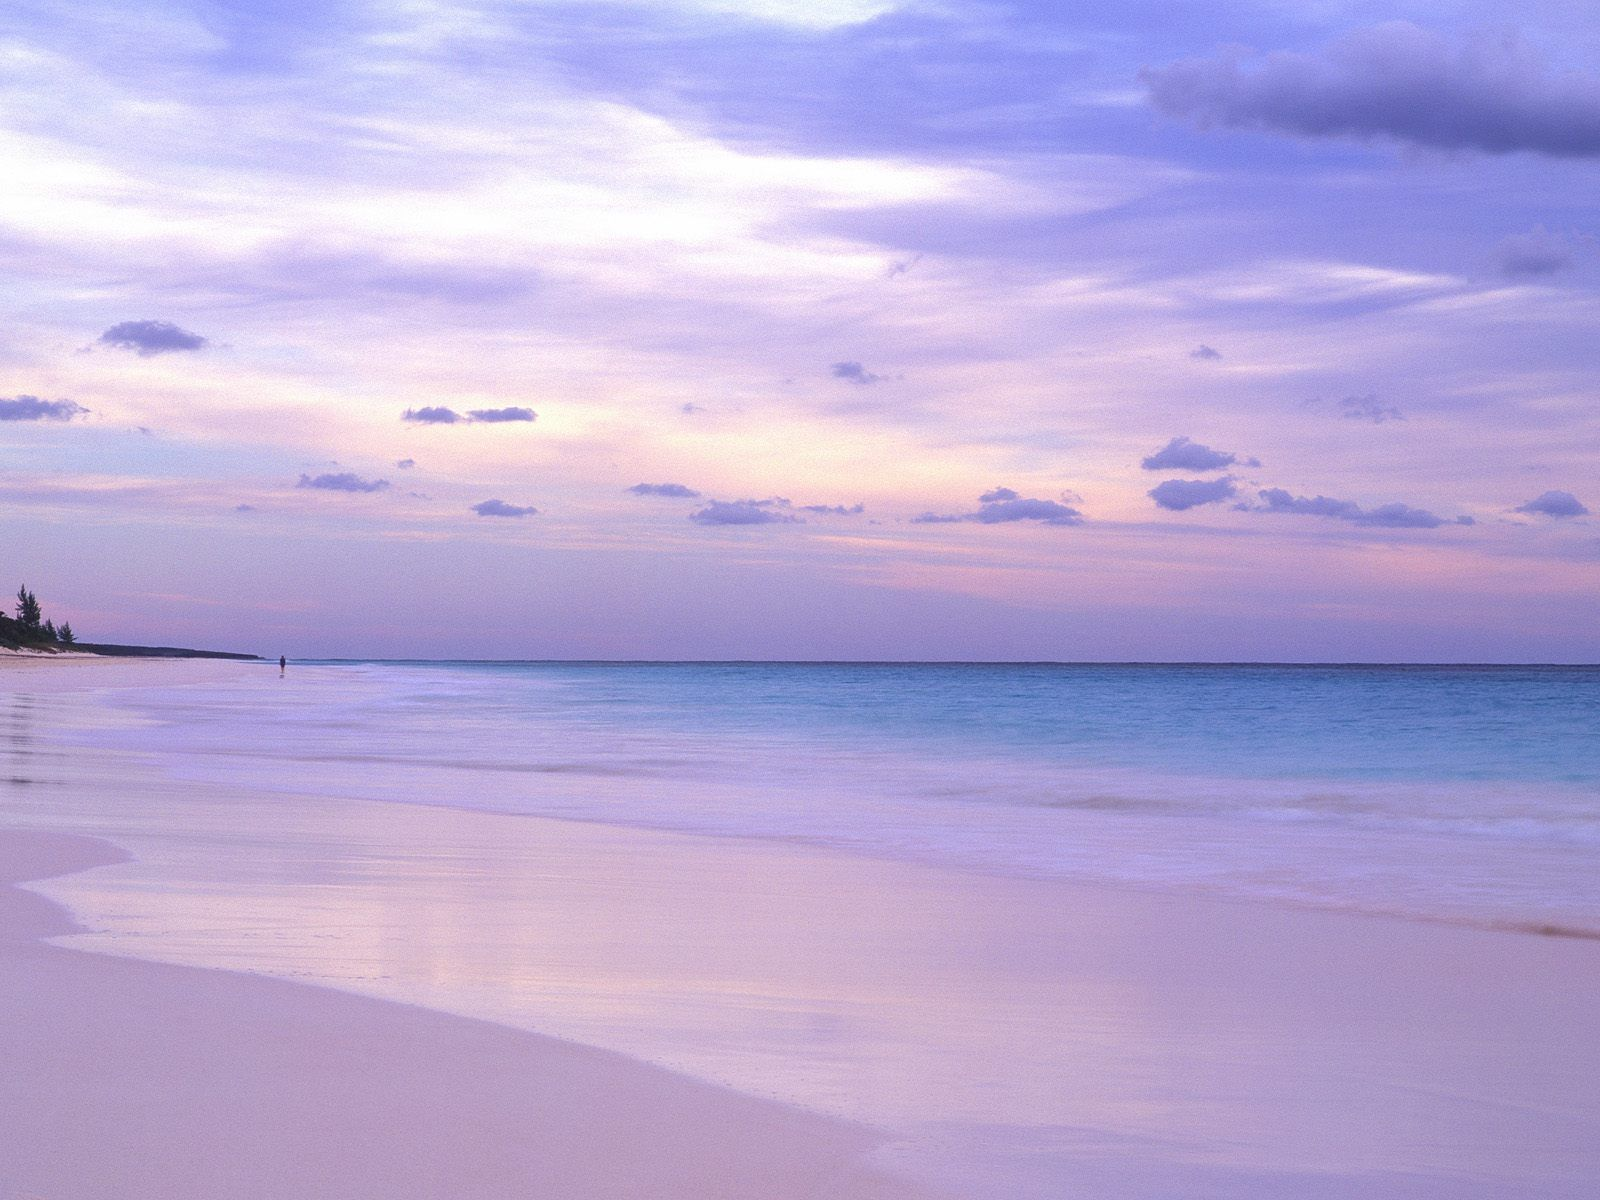 Surprising Awesome Azure Beach Background Computer Hi Pink Sand Download Free Architecture Designs Scobabritishbridgeorg